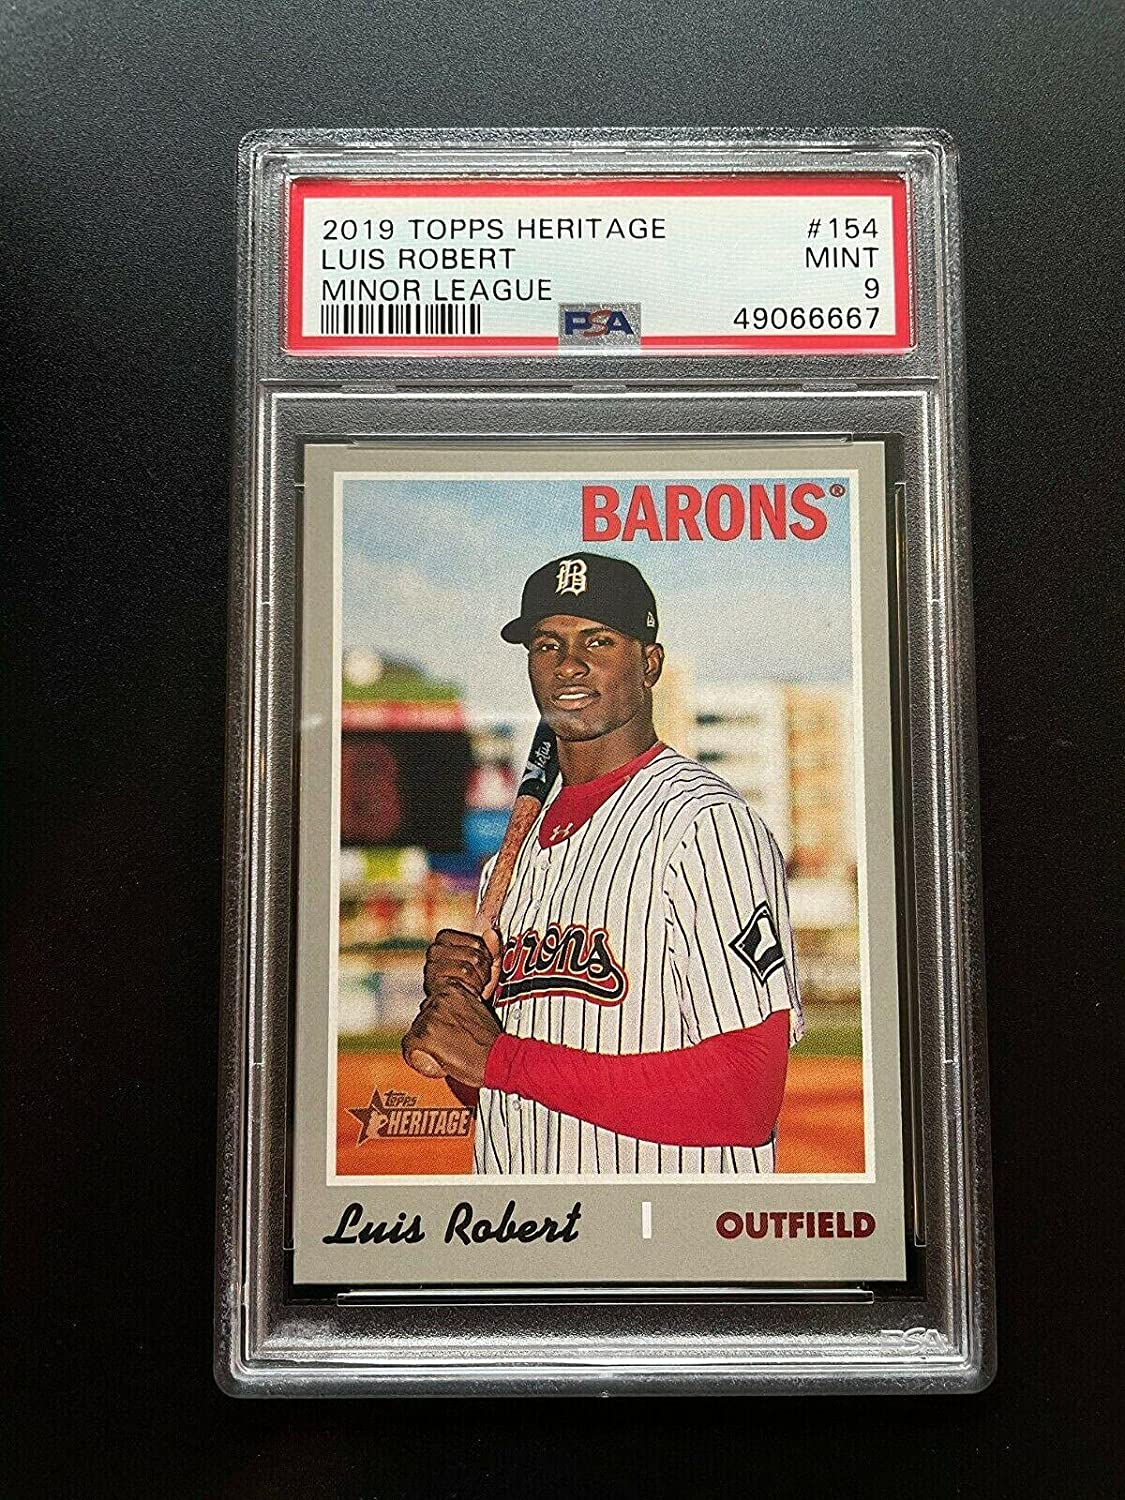 2019 LUIS ROBERT ROOKIE Topps Heritage White Sox PS Minor New mail order League Boston Mall